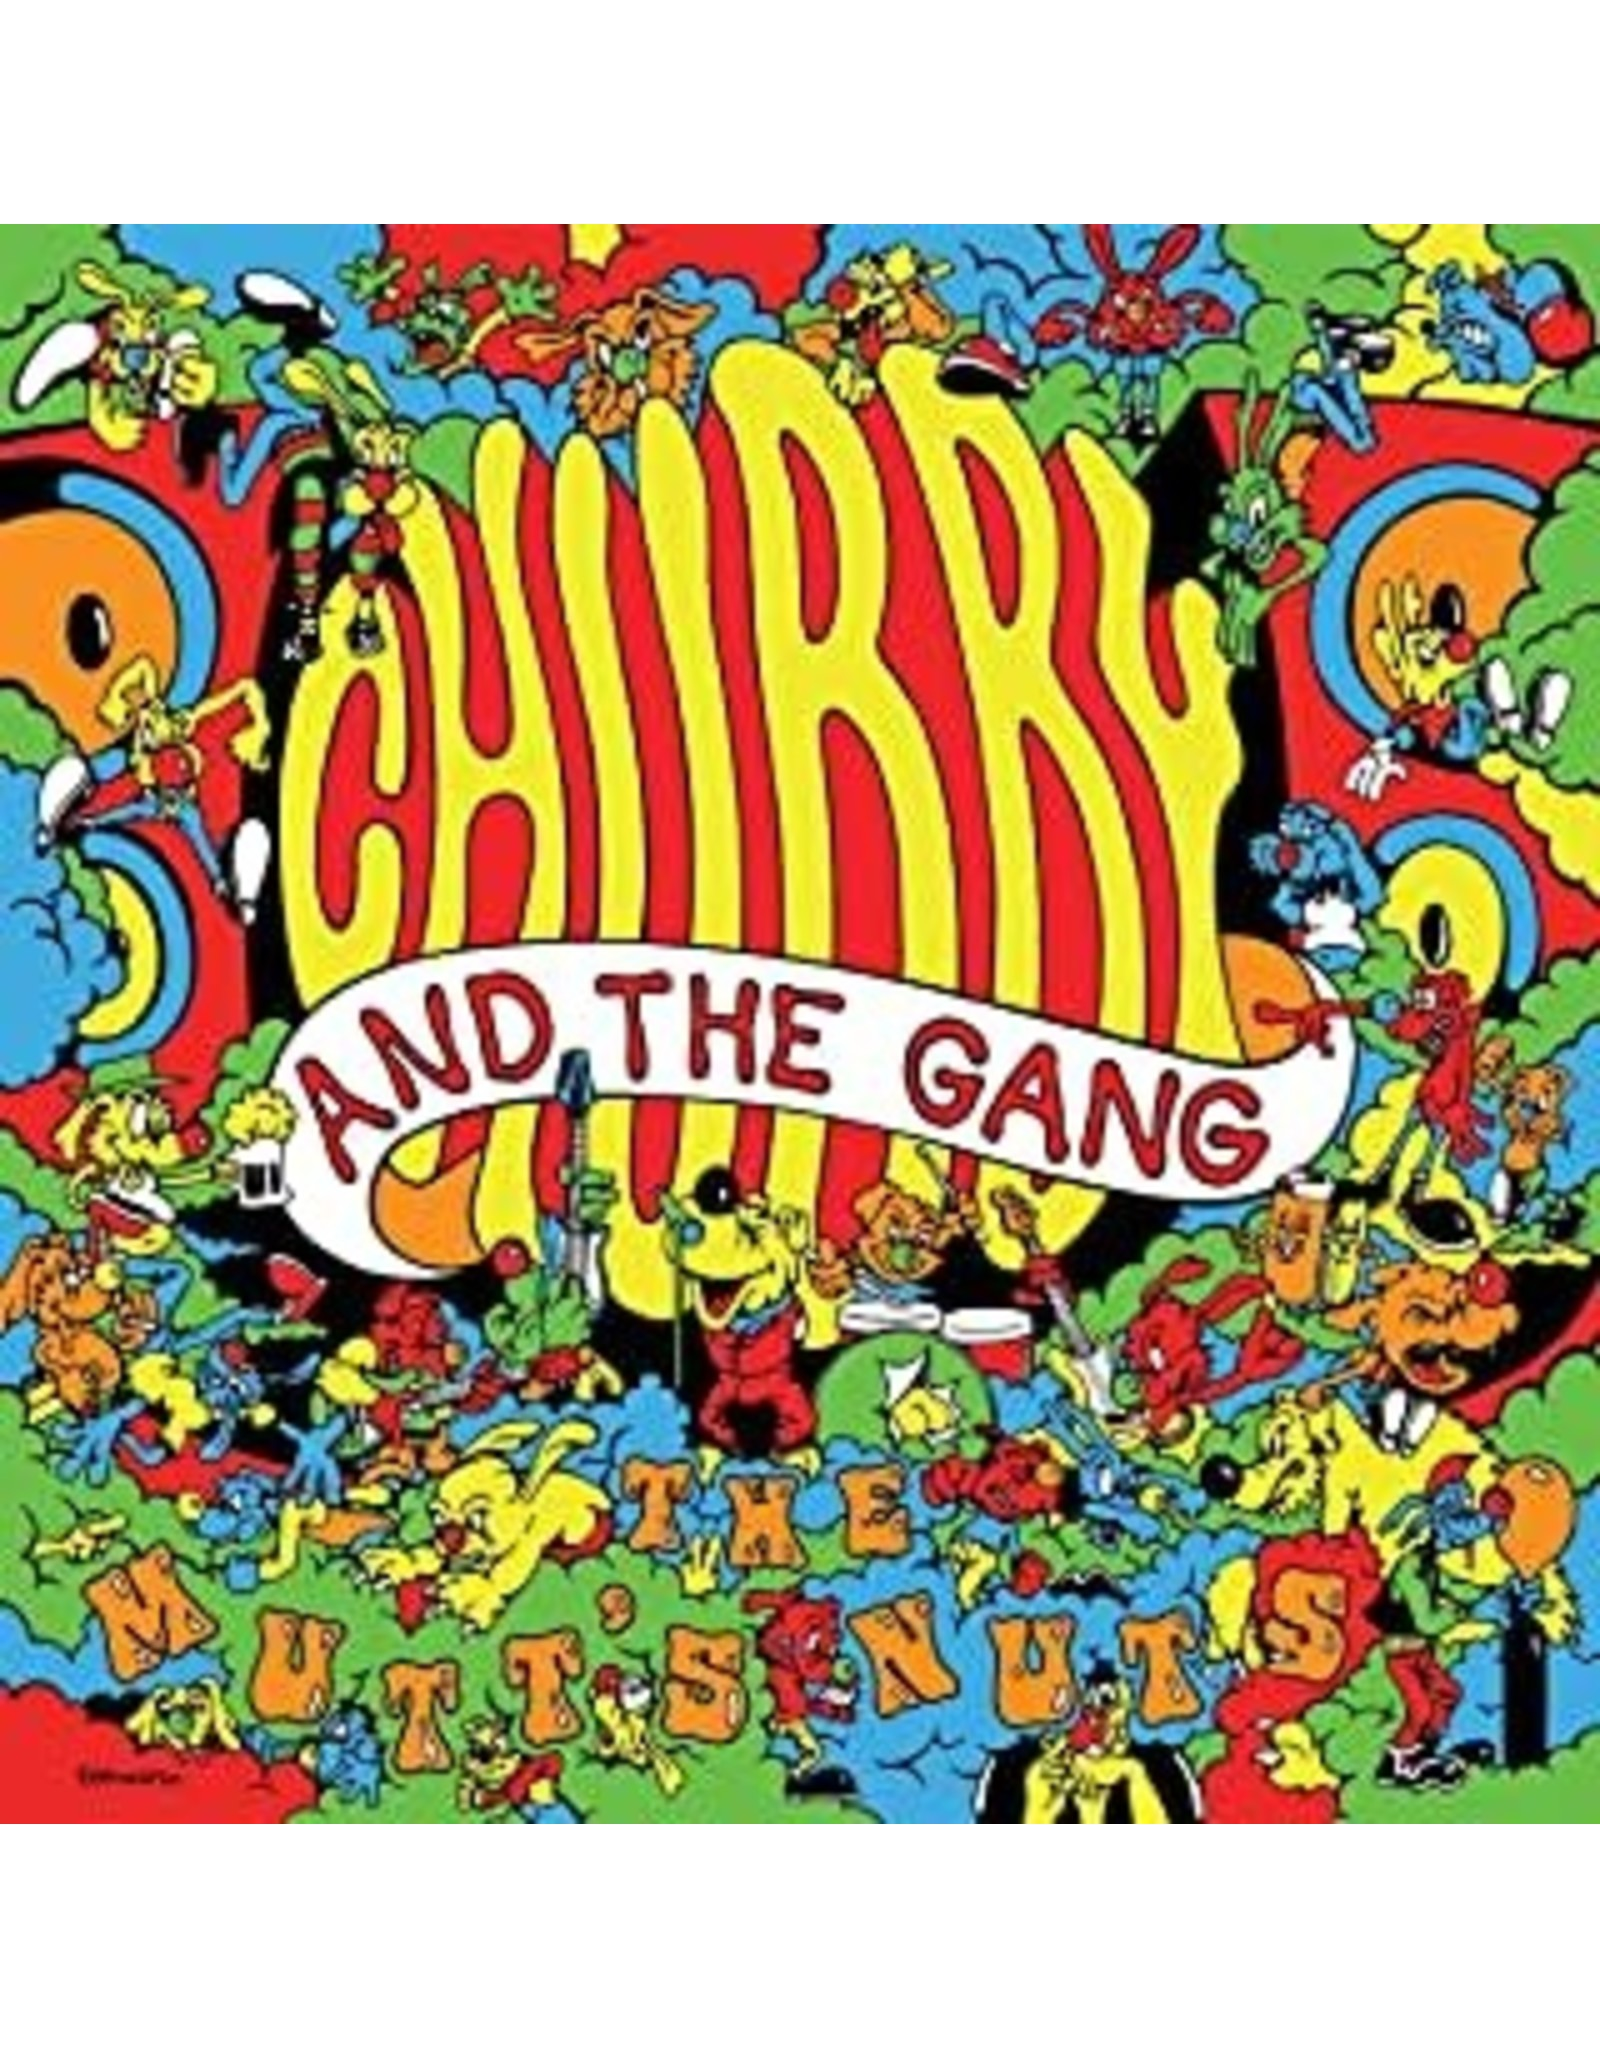 Chubby and The Gang - Mutts Nutts ORANGE TRANSLUCENT LP